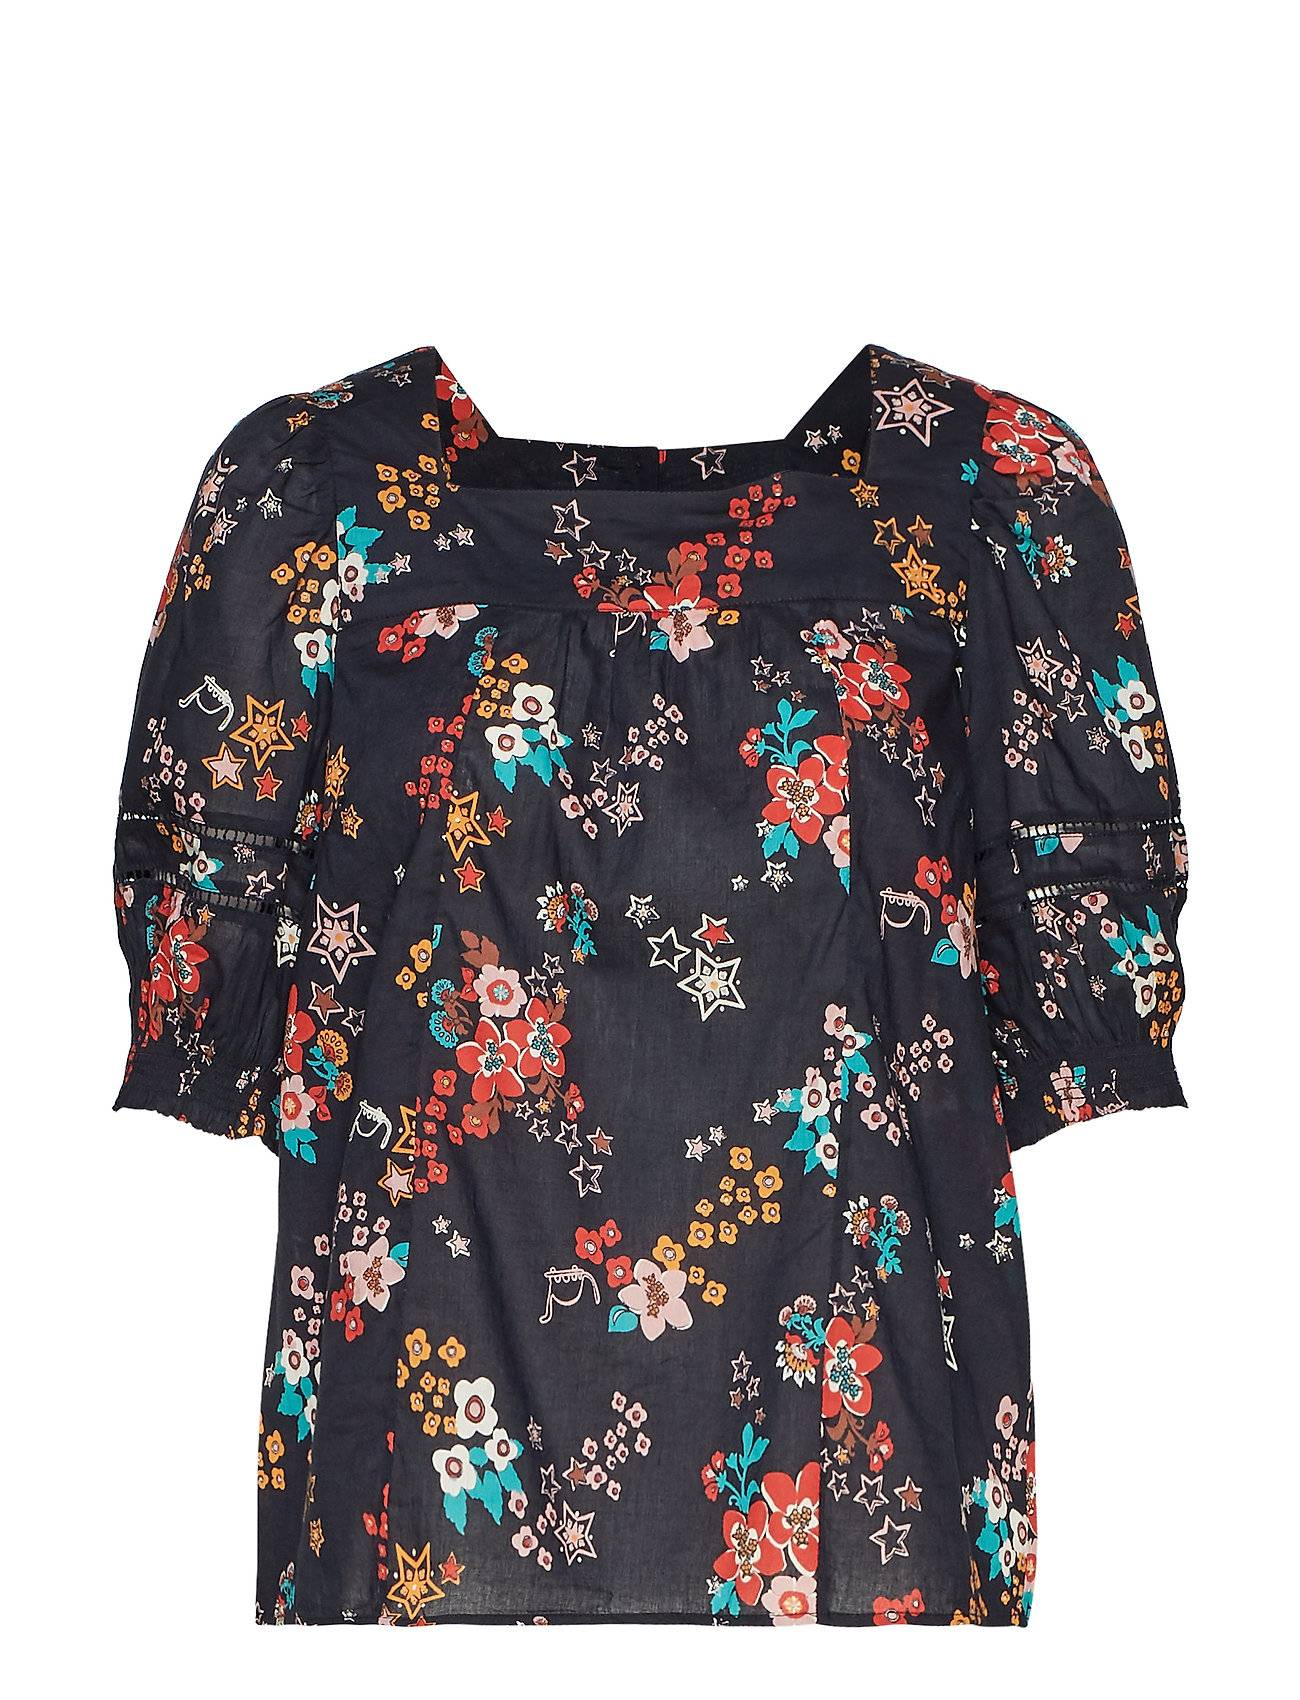 Image of ODD MOLLY Marvelously Free Blouse Blouses Short-sleeved Musta ODD MOLLY